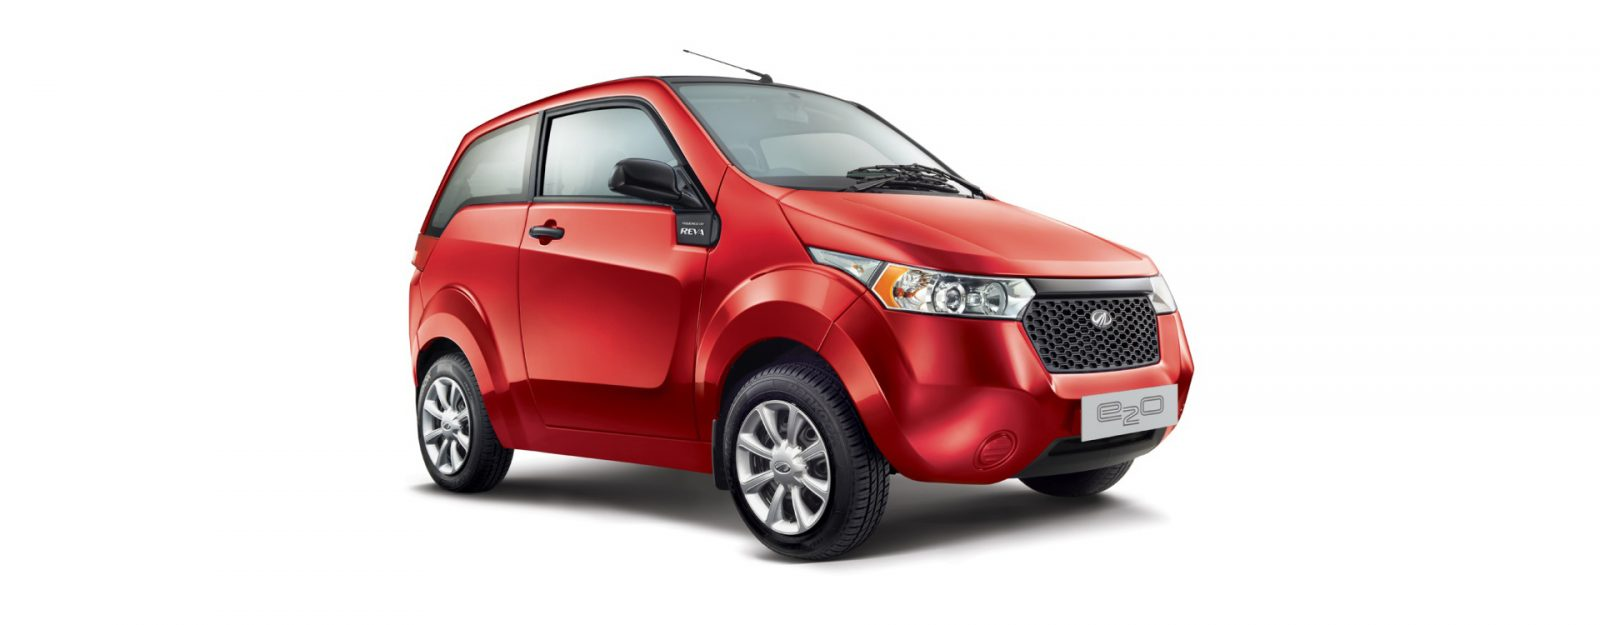 Top 3 Electric Cars from Mahindra